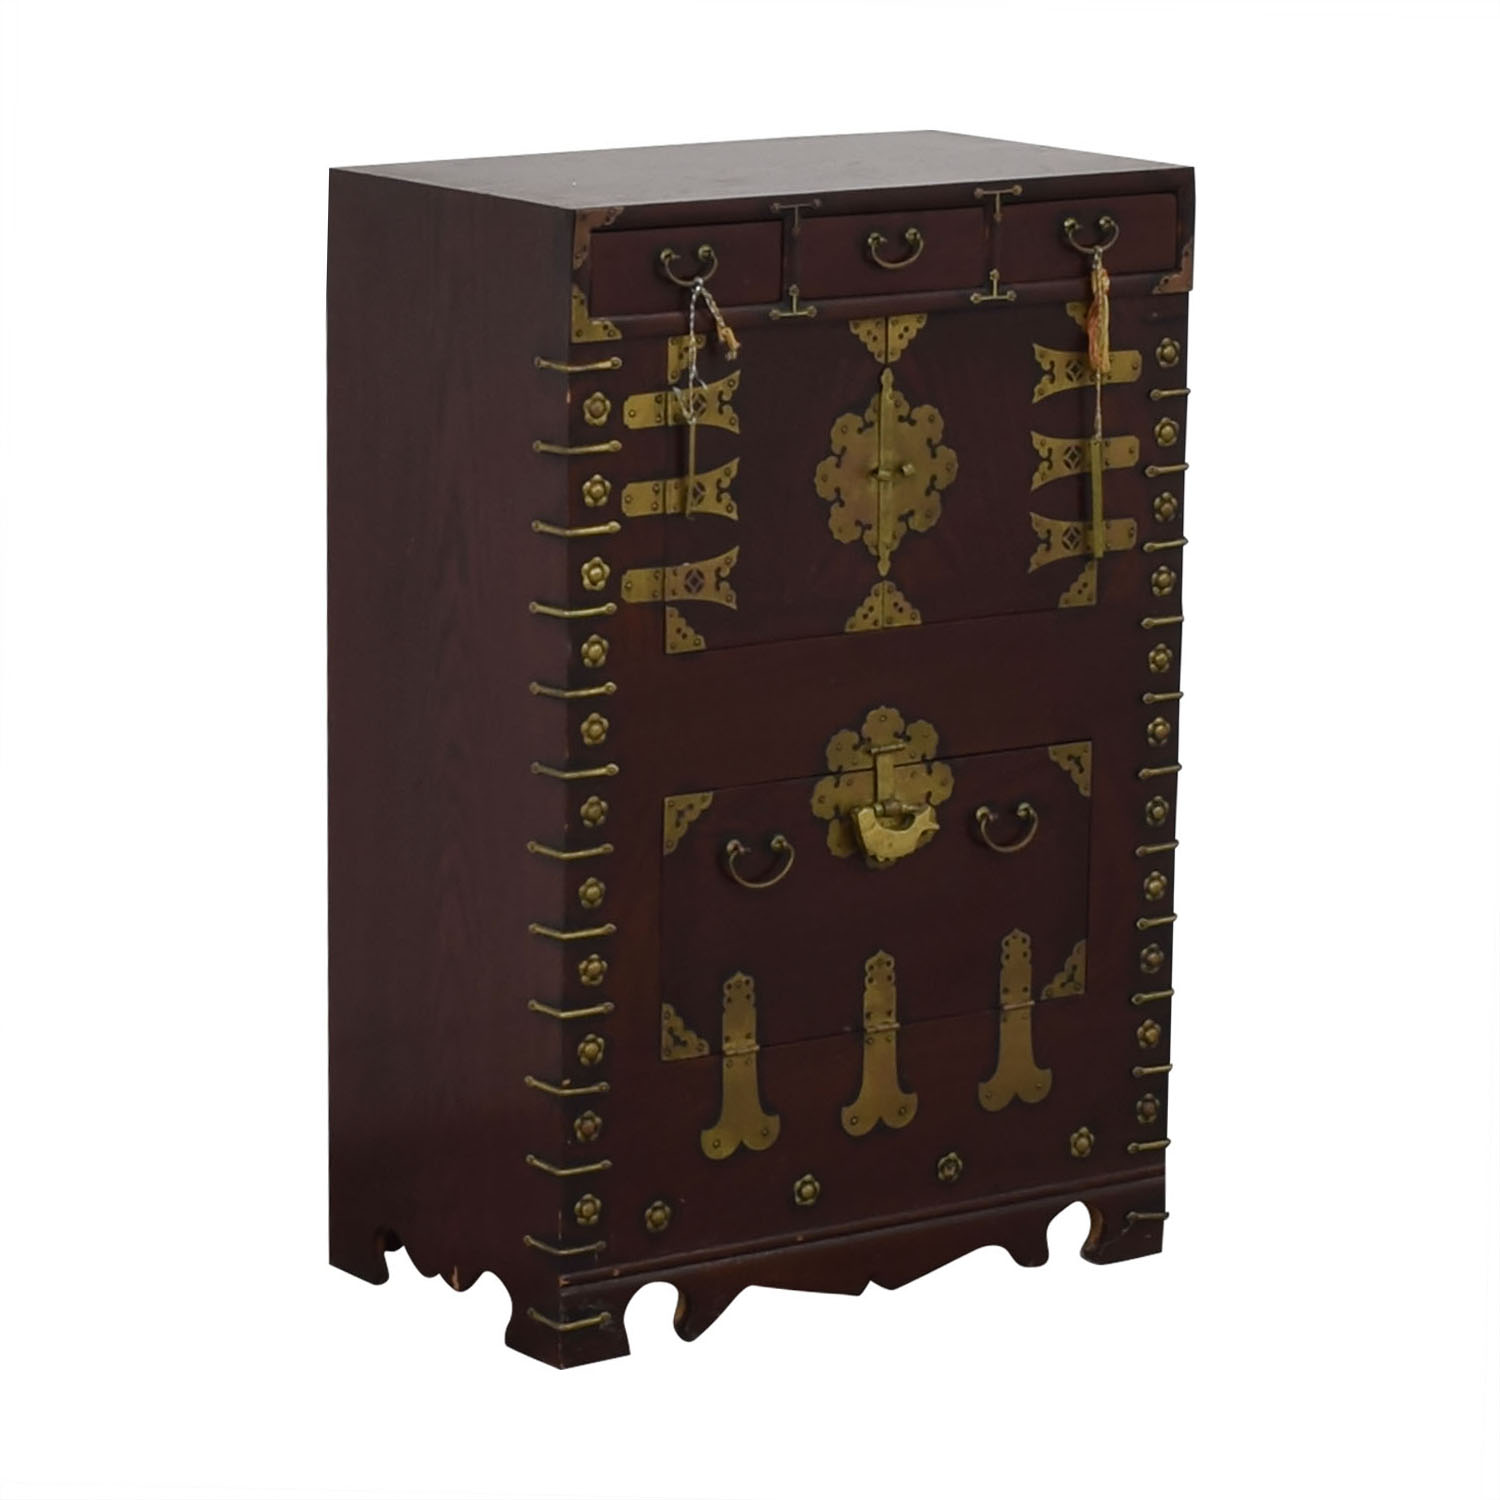 Oriental Decorative Cabinet / Cabinets & Sideboards